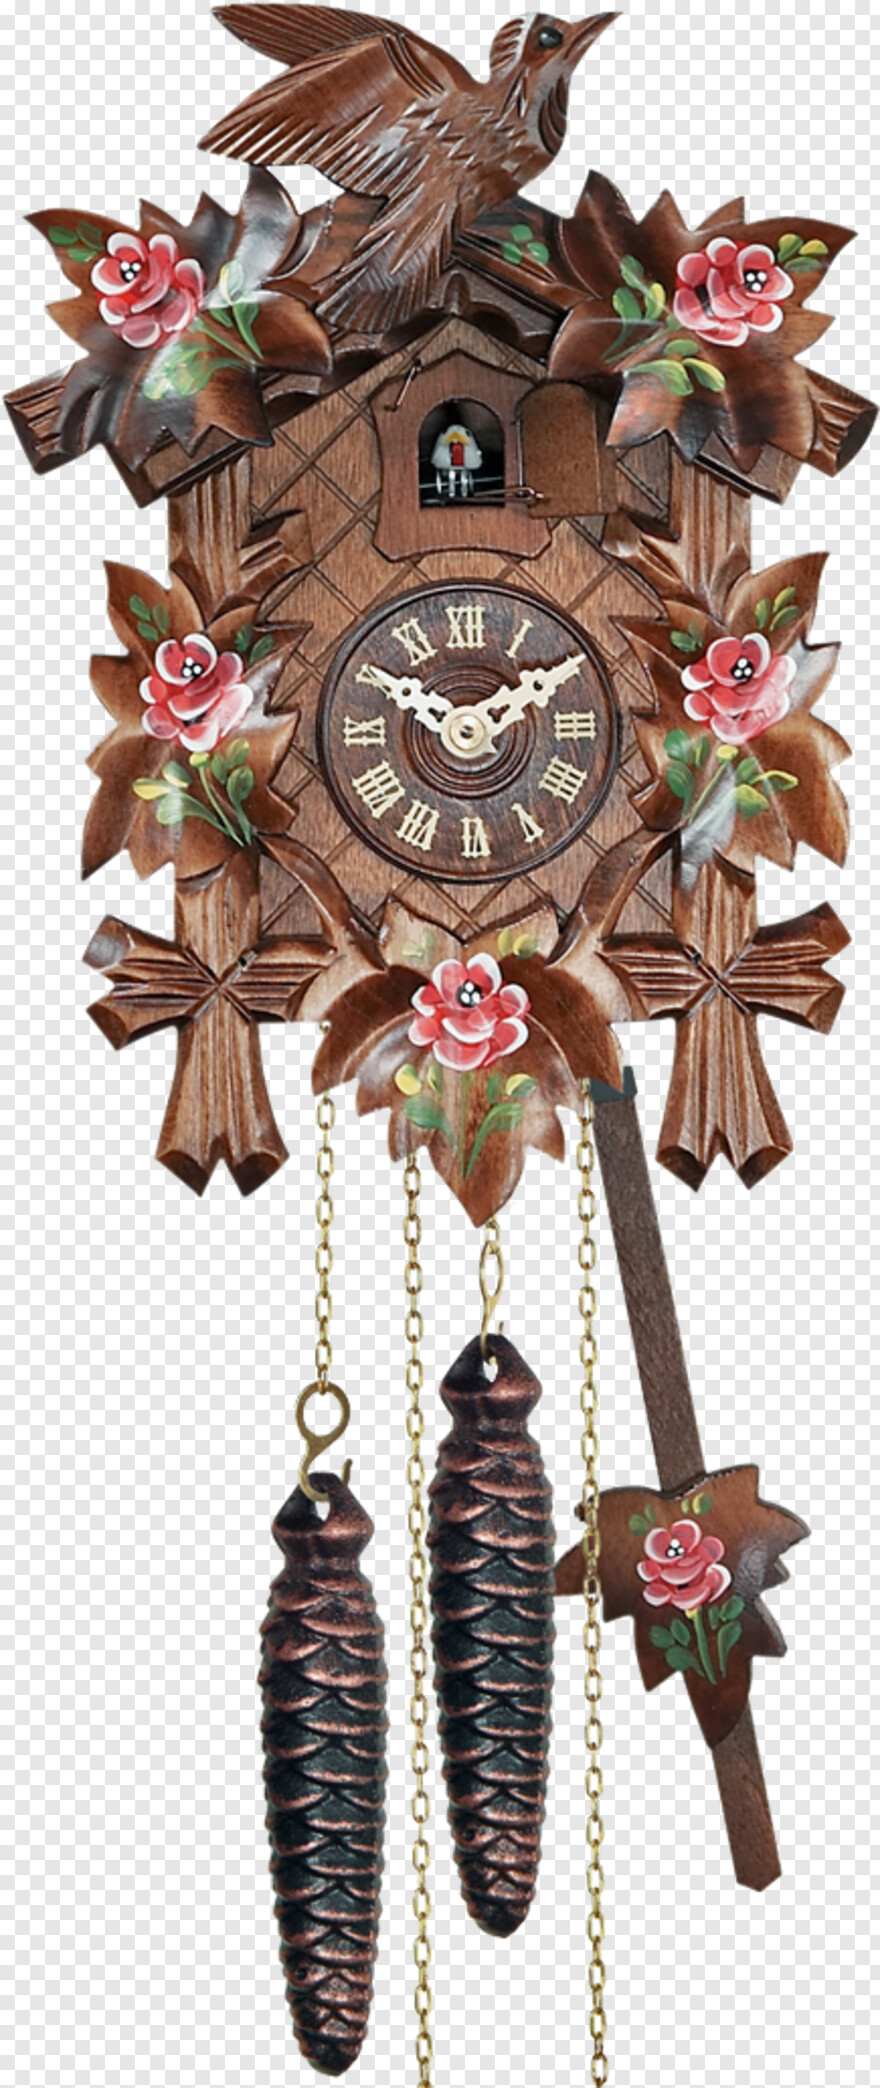 Clock Hand - Kuckucks Uhr, Transparent Png